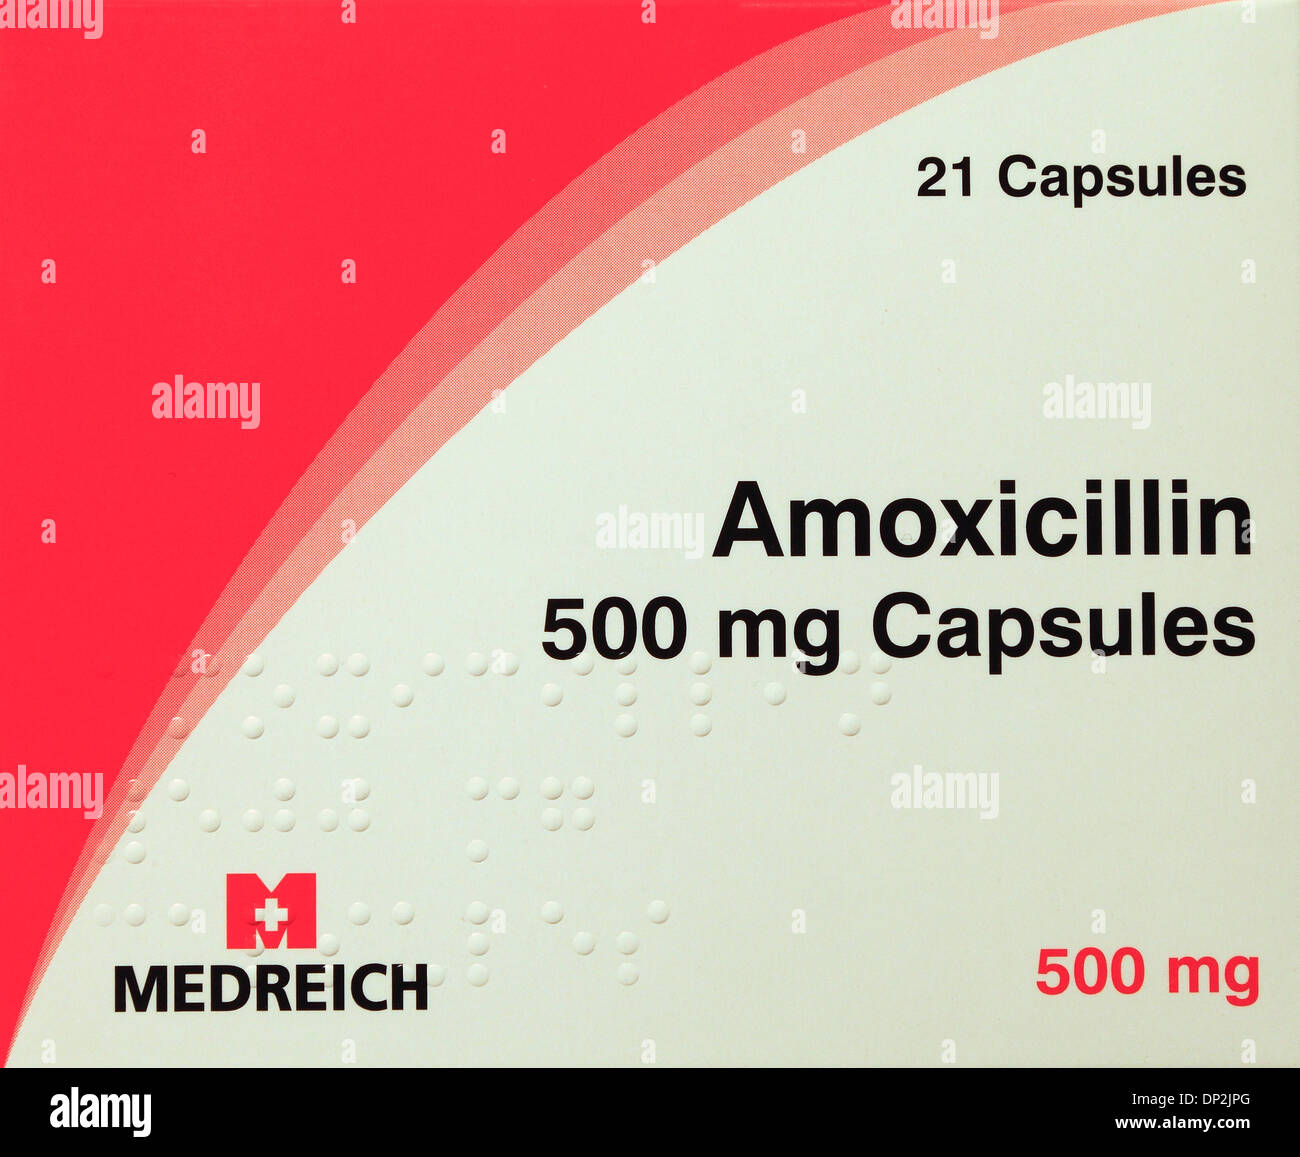 How long should Amoxicillin (500mg) take to work?